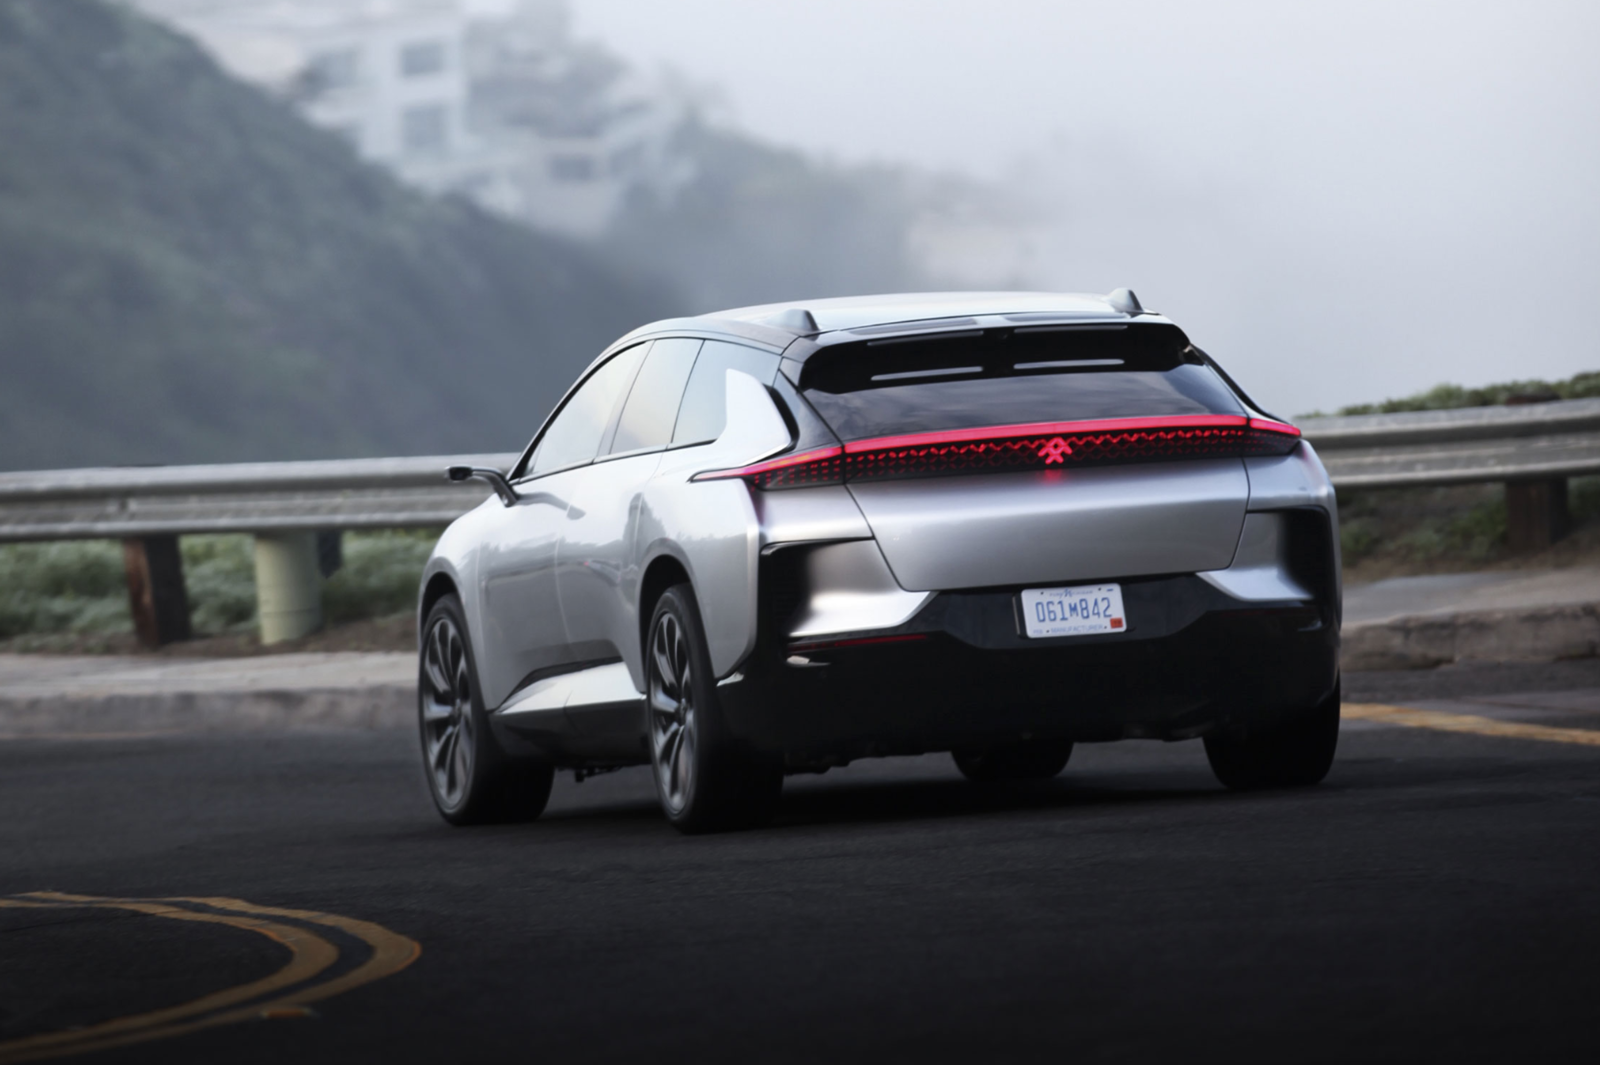 FF 91 - Faraday Future